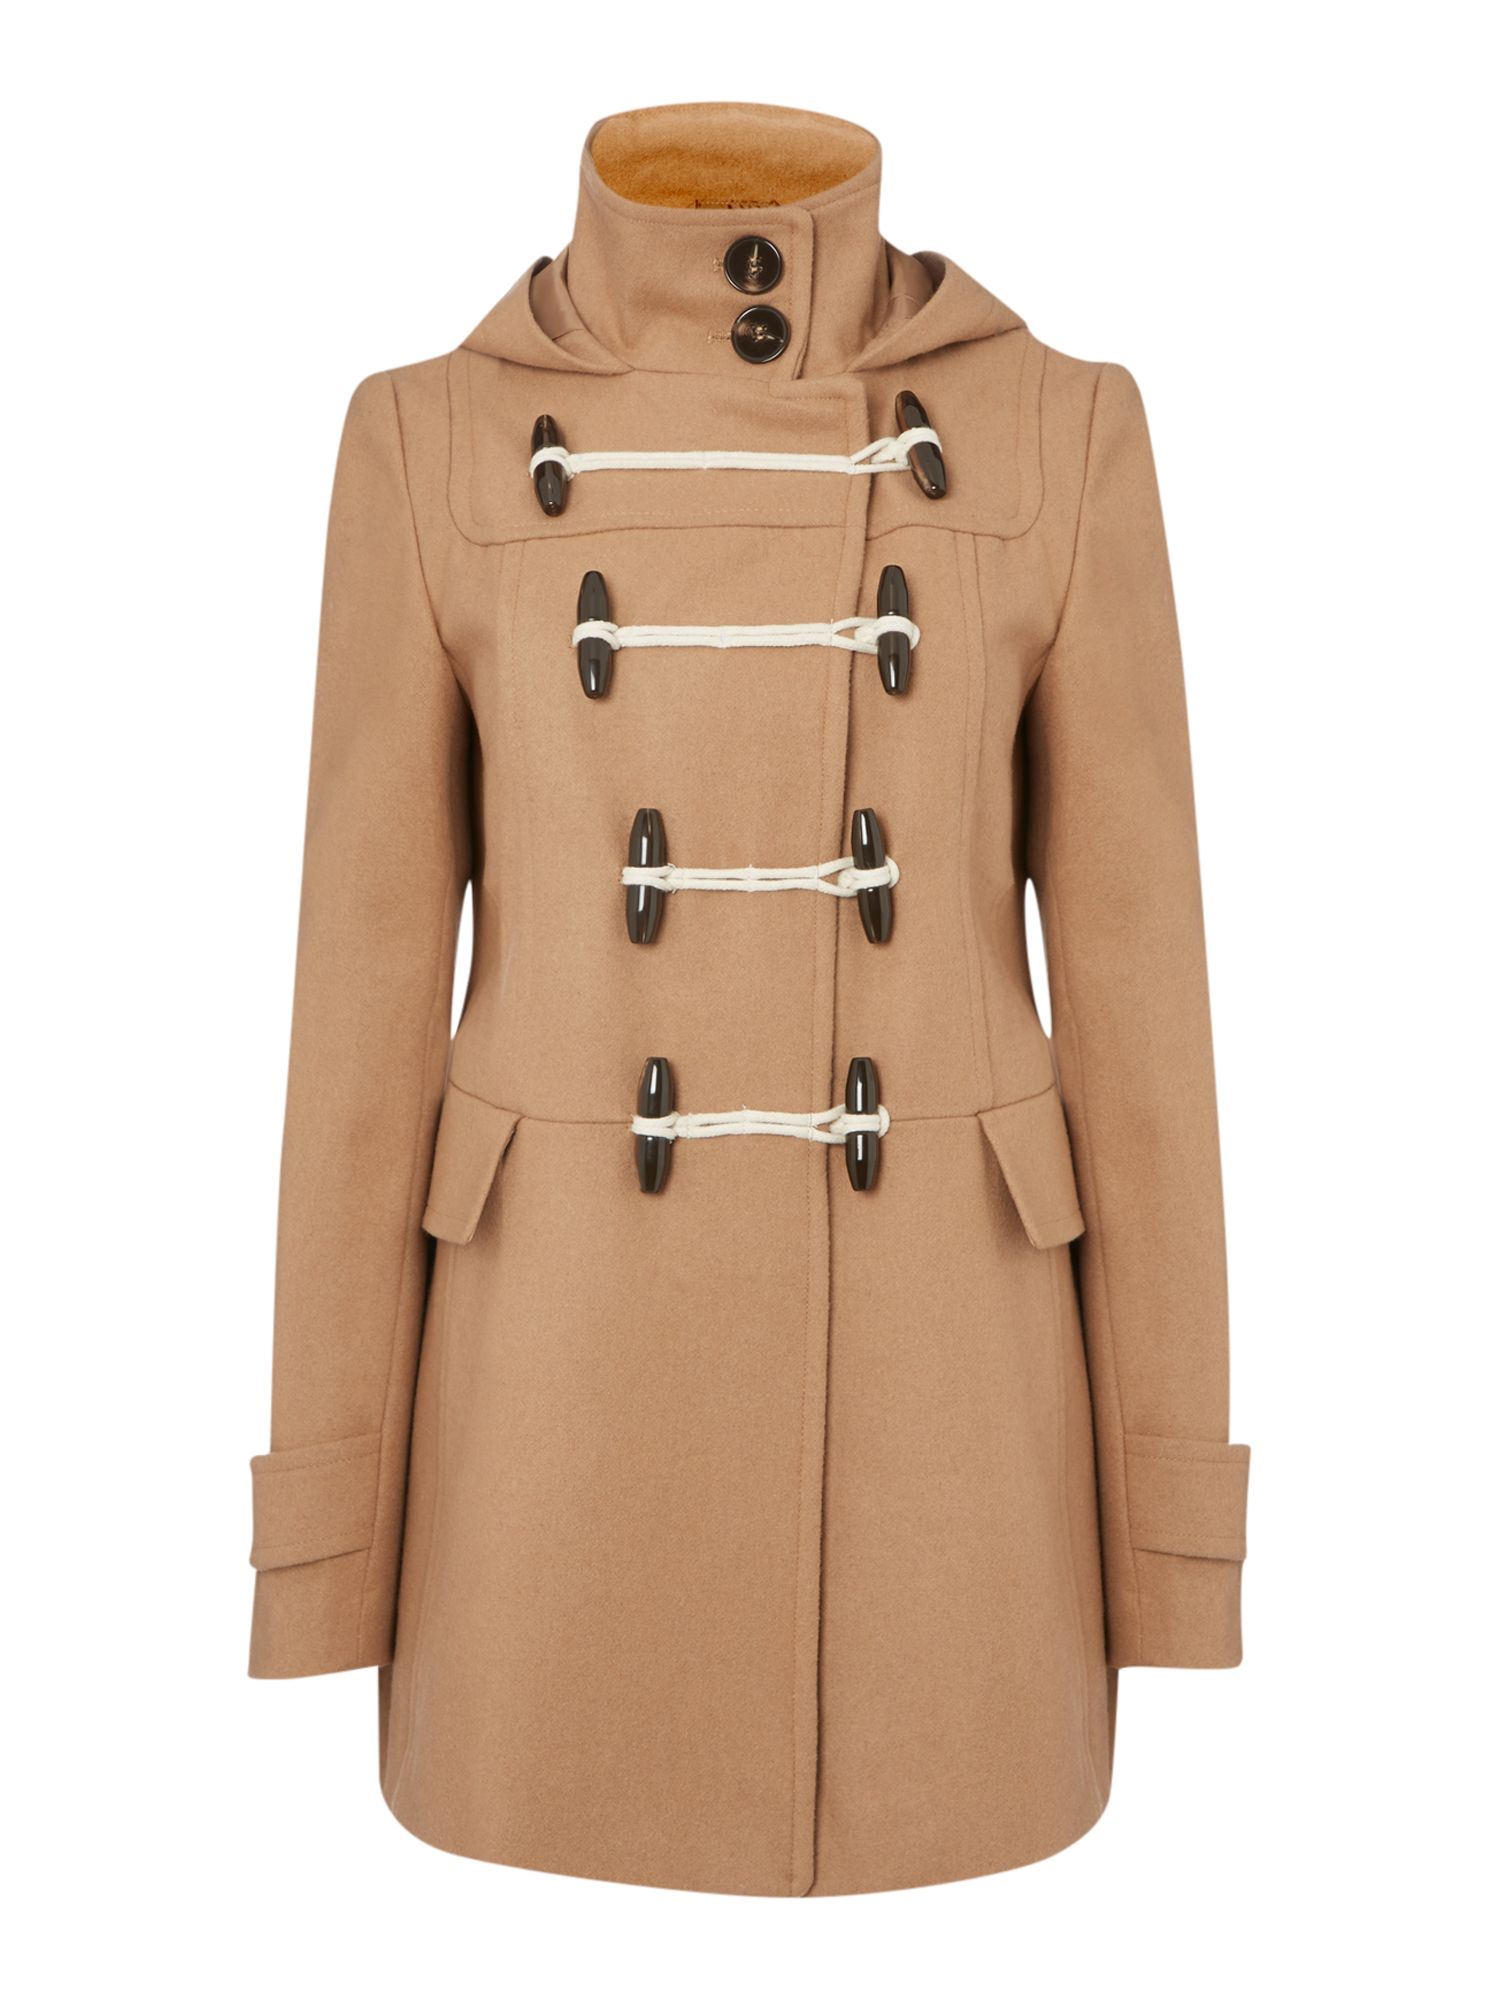 Hooded duffle coat